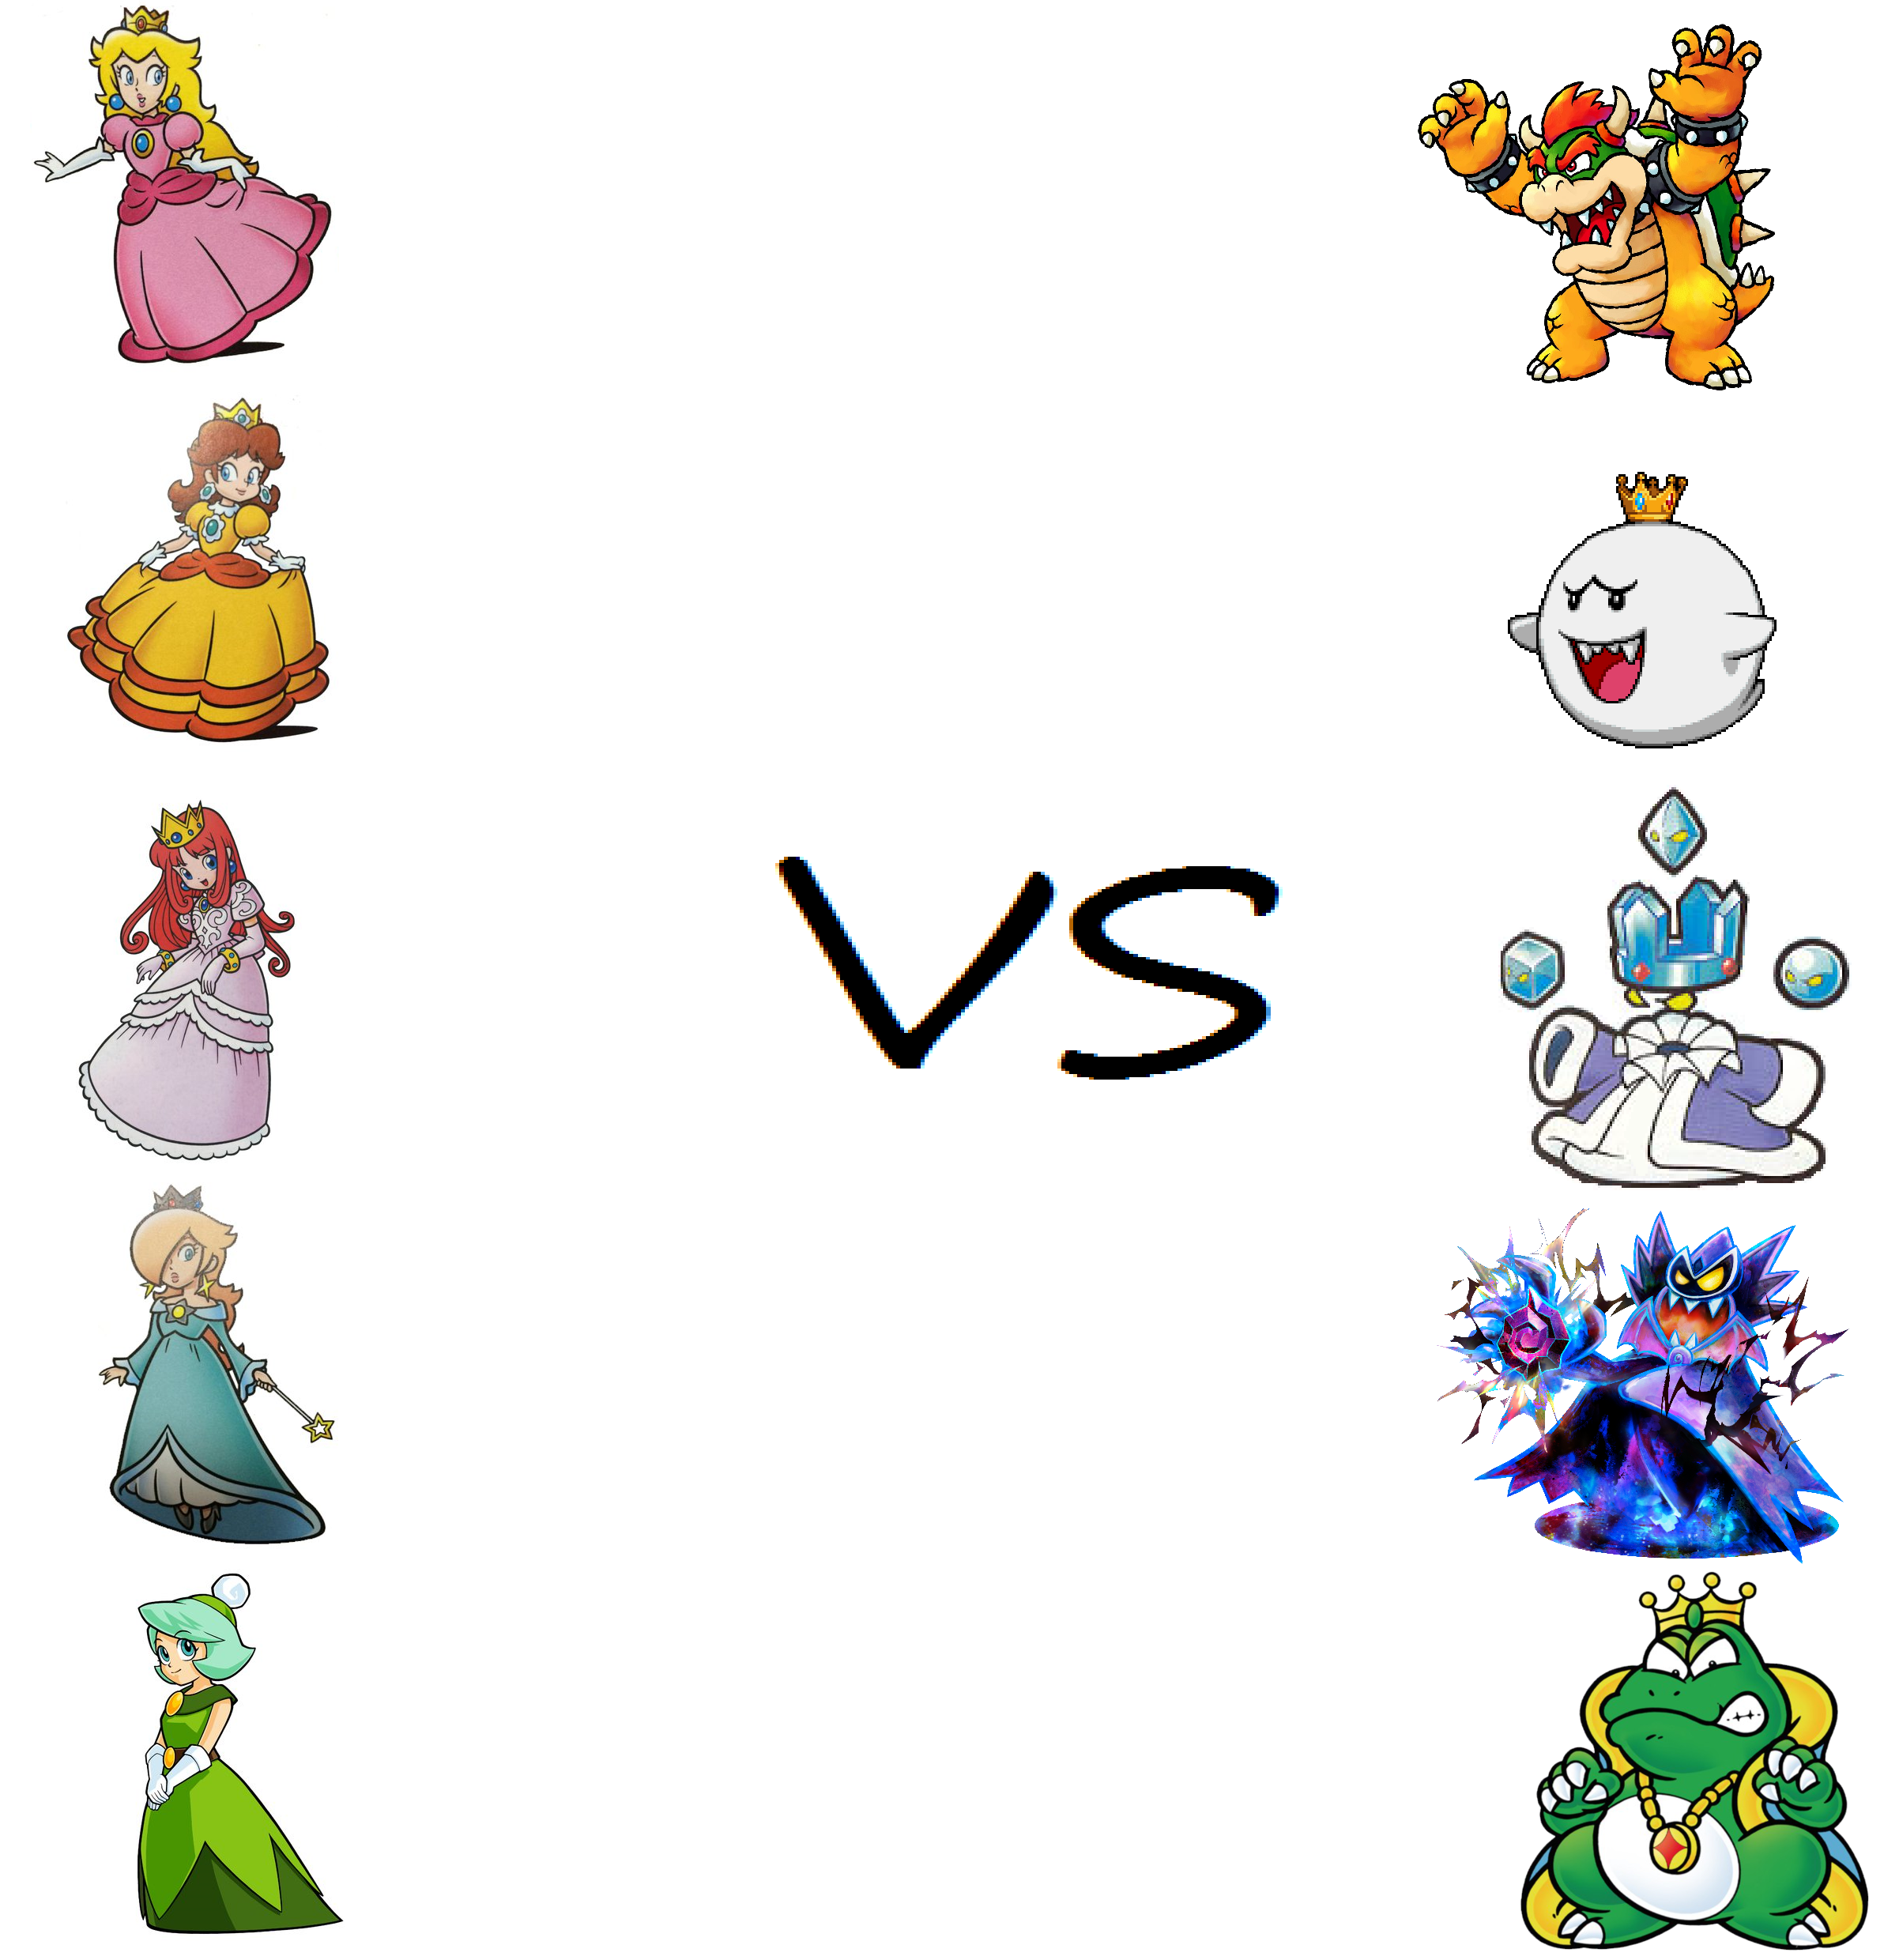 Pure princess vs evil kings requested by earthbouds on deviantart - Prinses pure ...